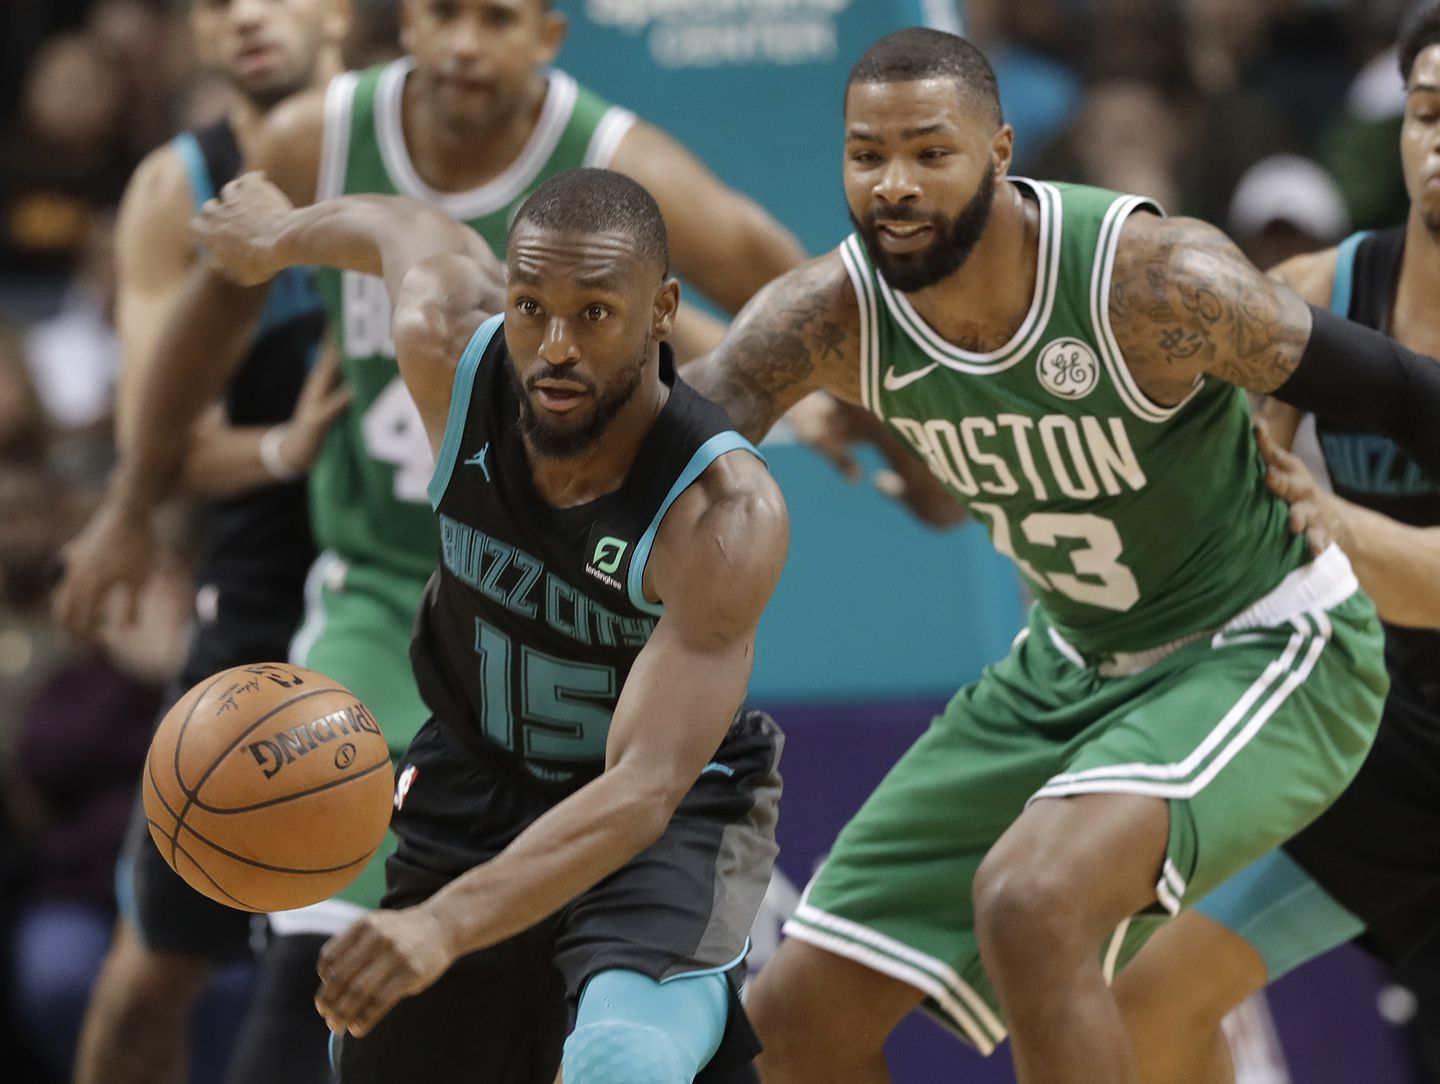 f3b923c7833 Kemba Walker has emerged as one of the game s elite players - The ...